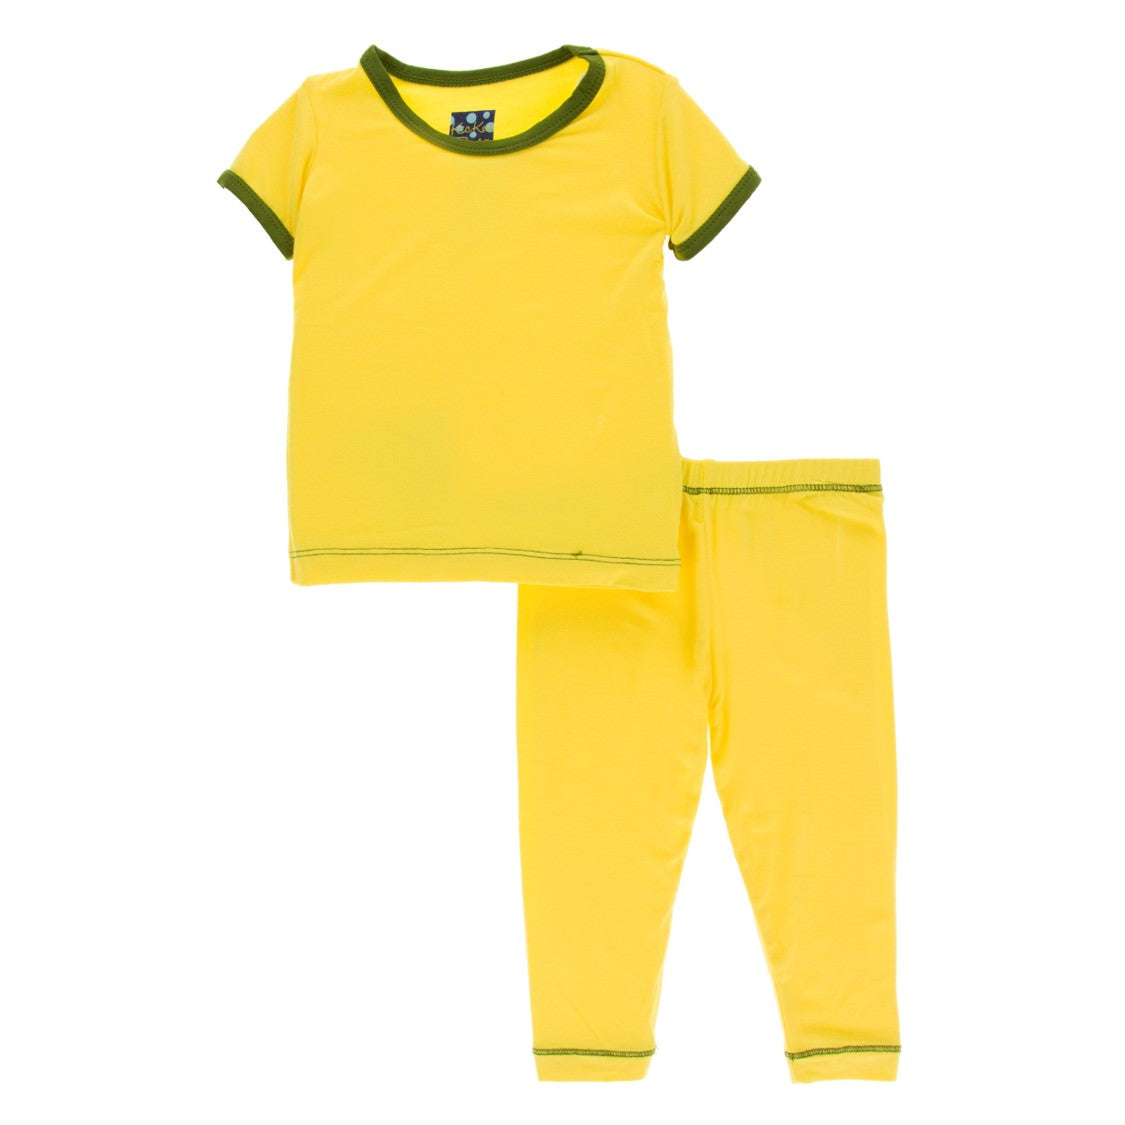 Kickee Pants - Spring 1 2019 - Pajama Set - Lemon Blossom with Pesto